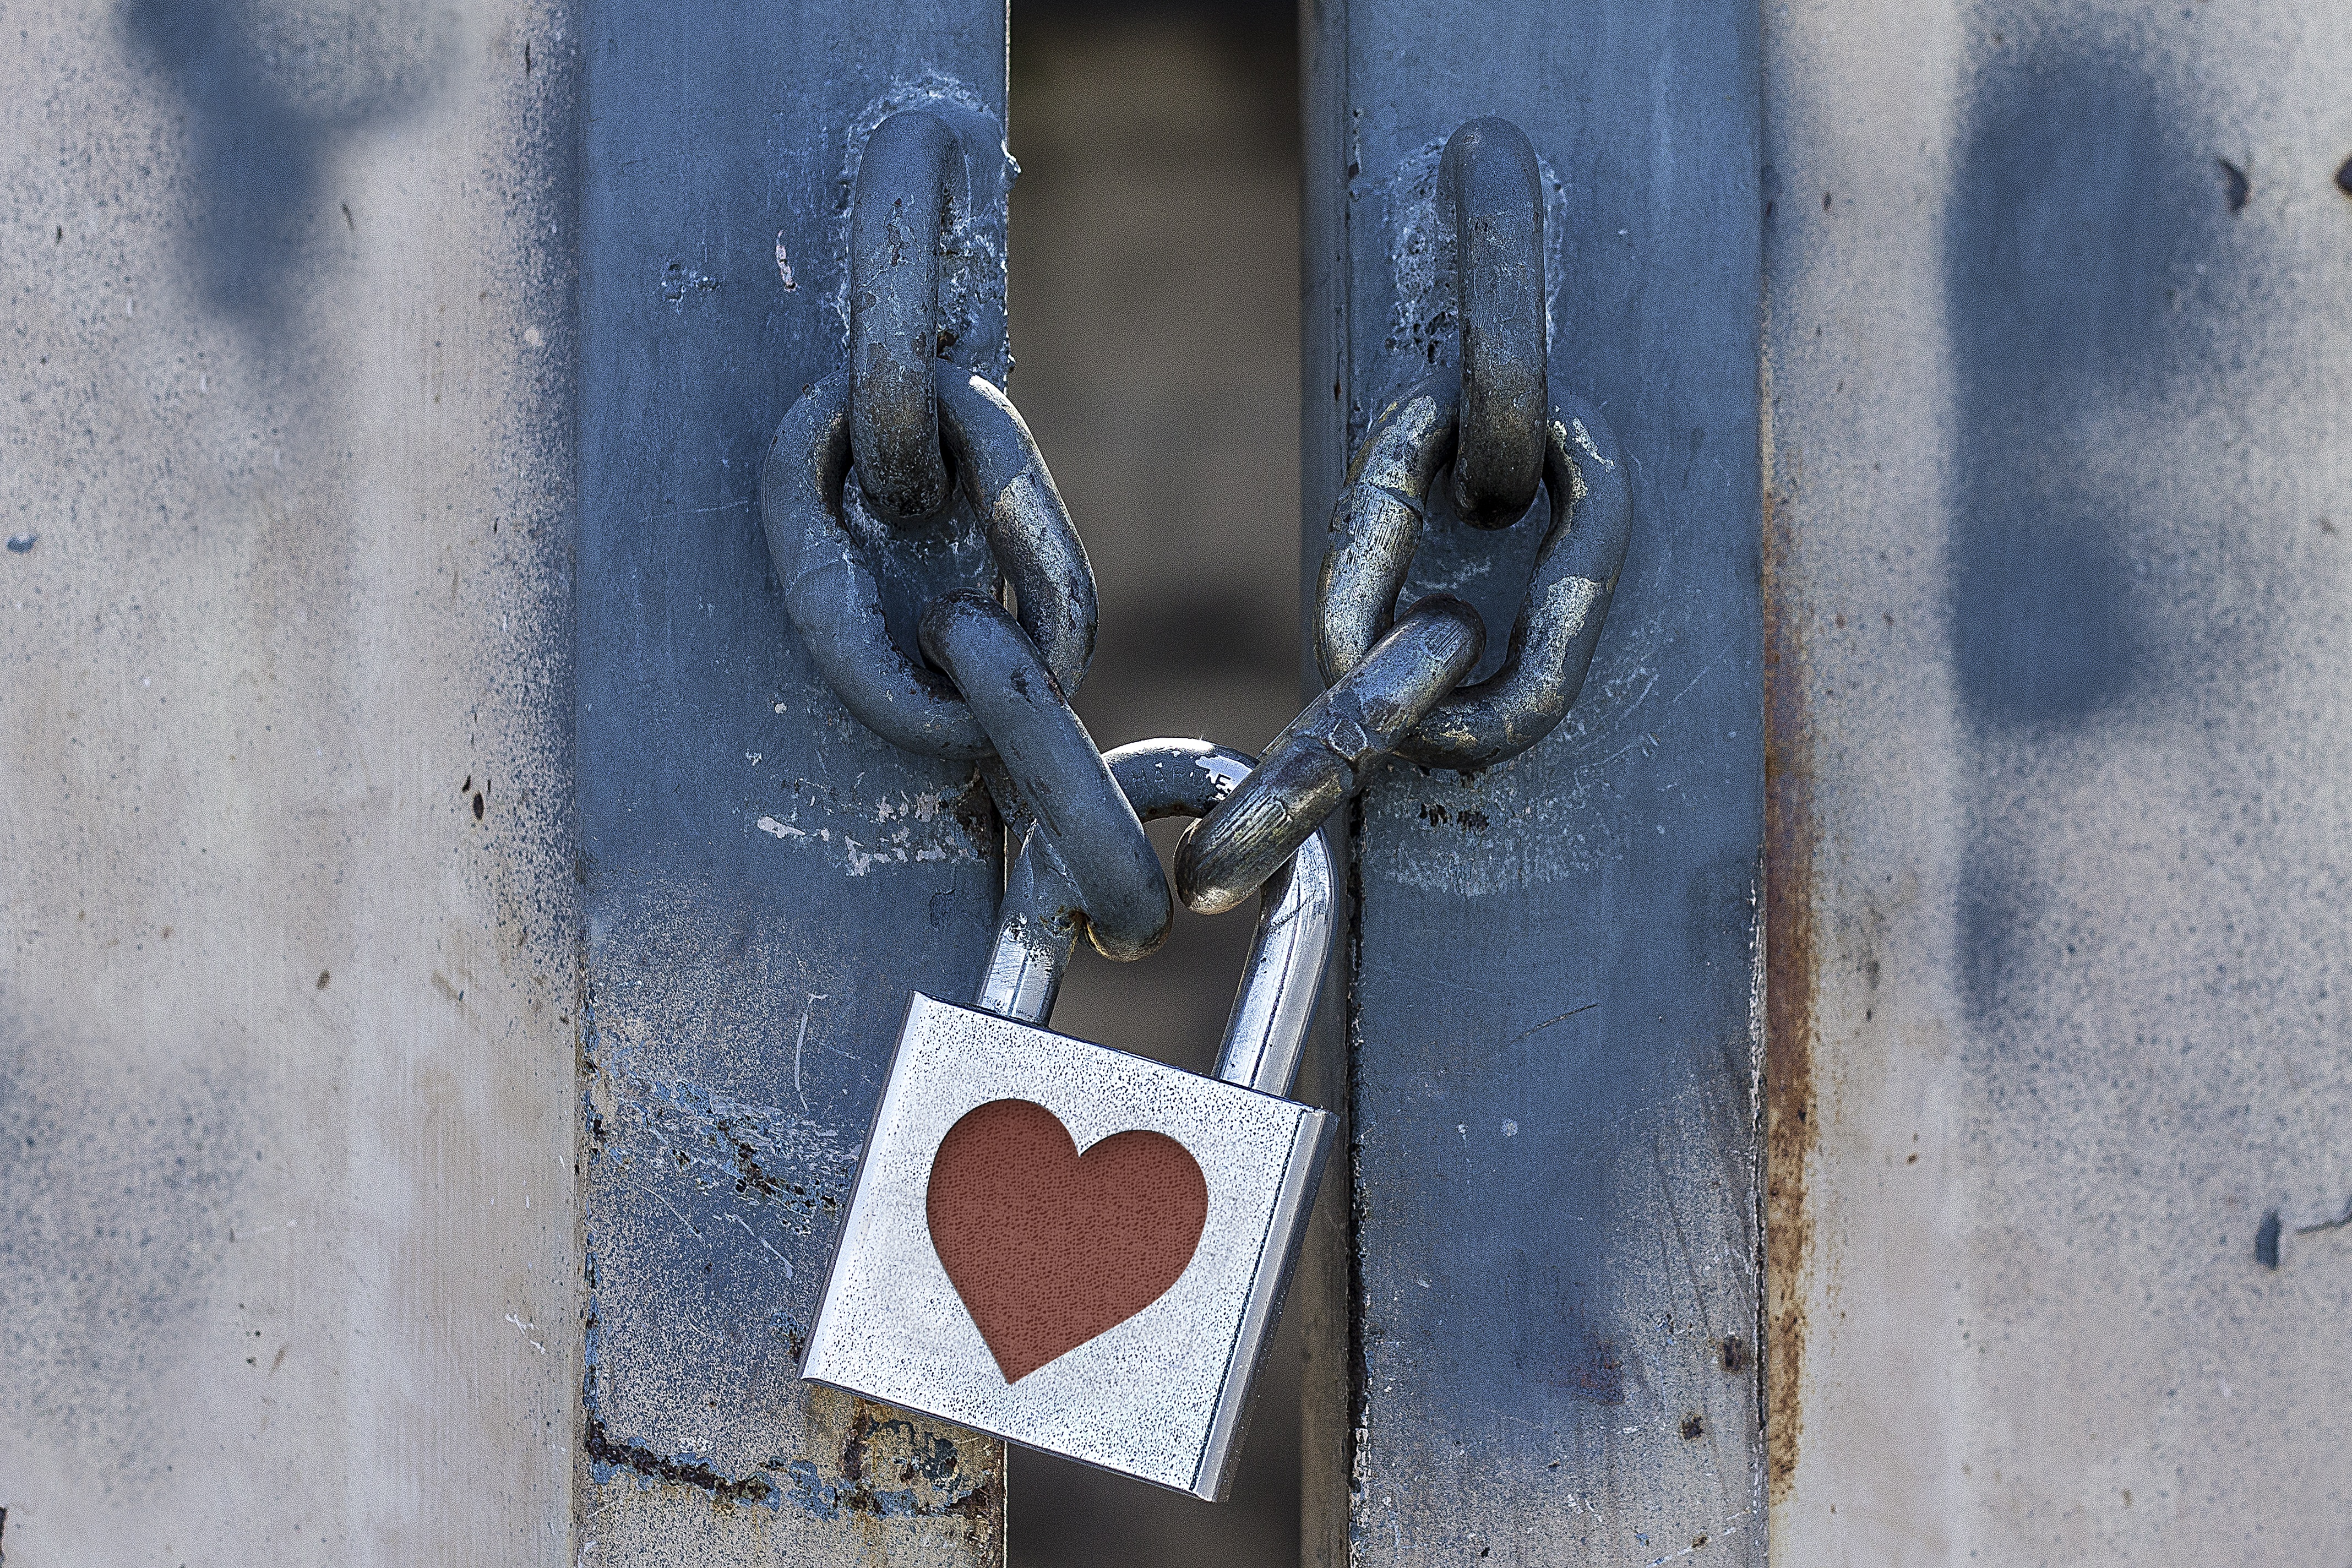 111591 download wallpaper Love, Lock, Heart, Closed, It's Locked, Chain screensavers and pictures for free